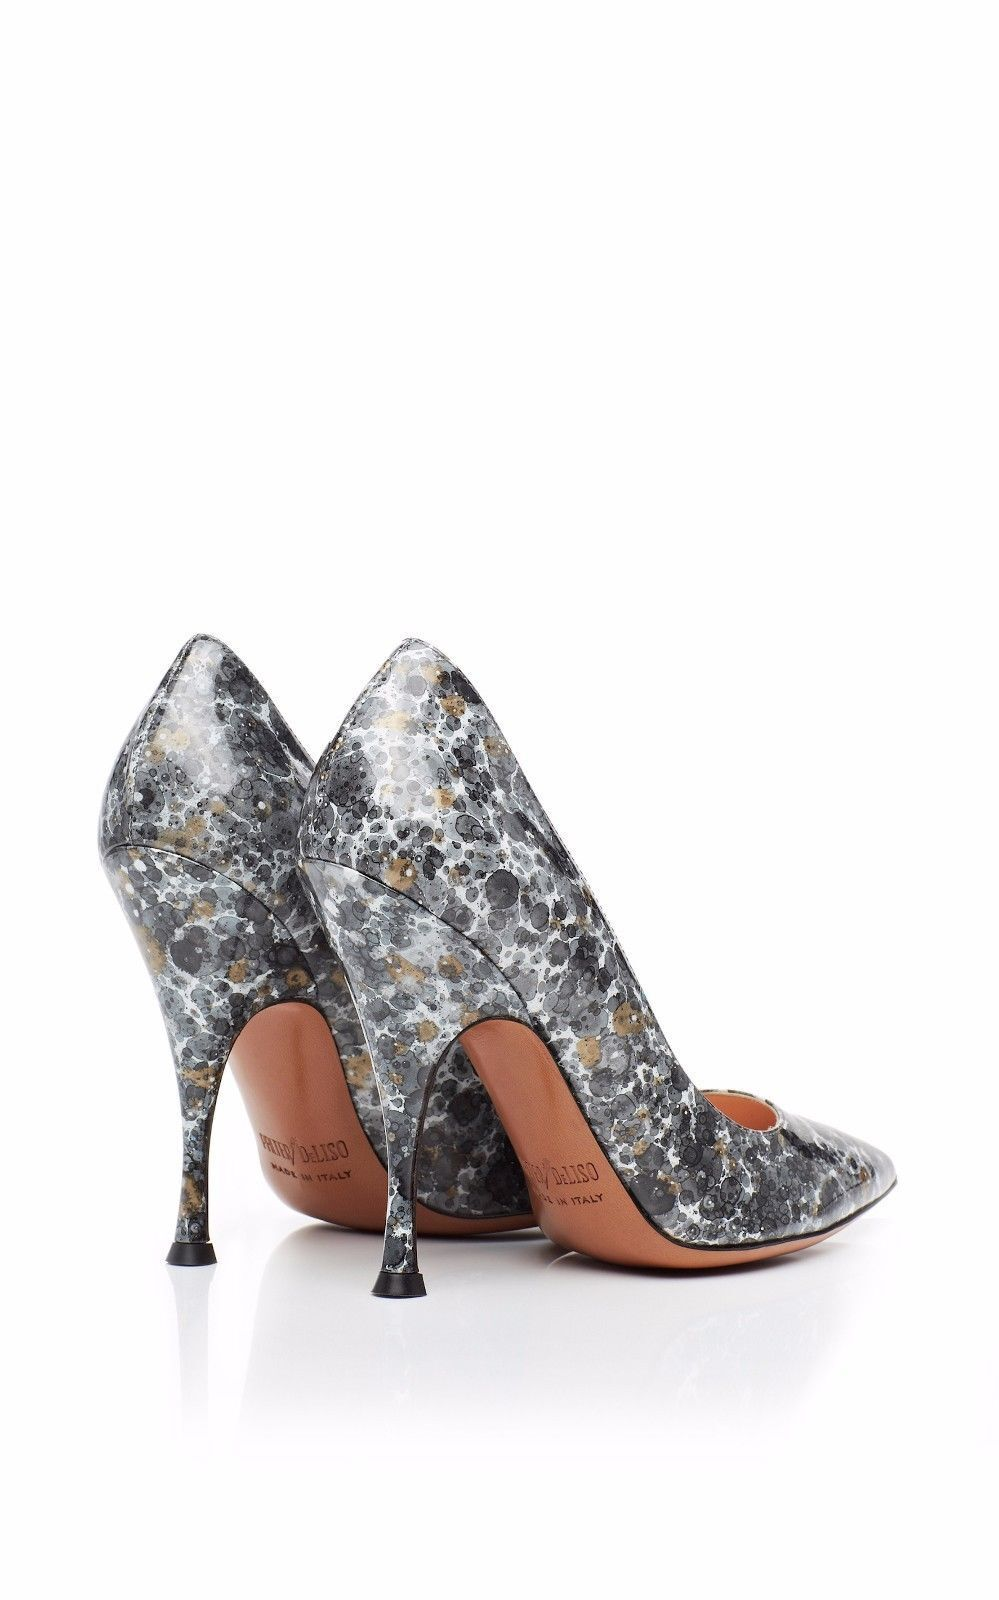 PALTER Silver DELISO MONET PUMPS Gray Silver PALTER Hand Painted 895 New Sz US 10 floral 25fa72